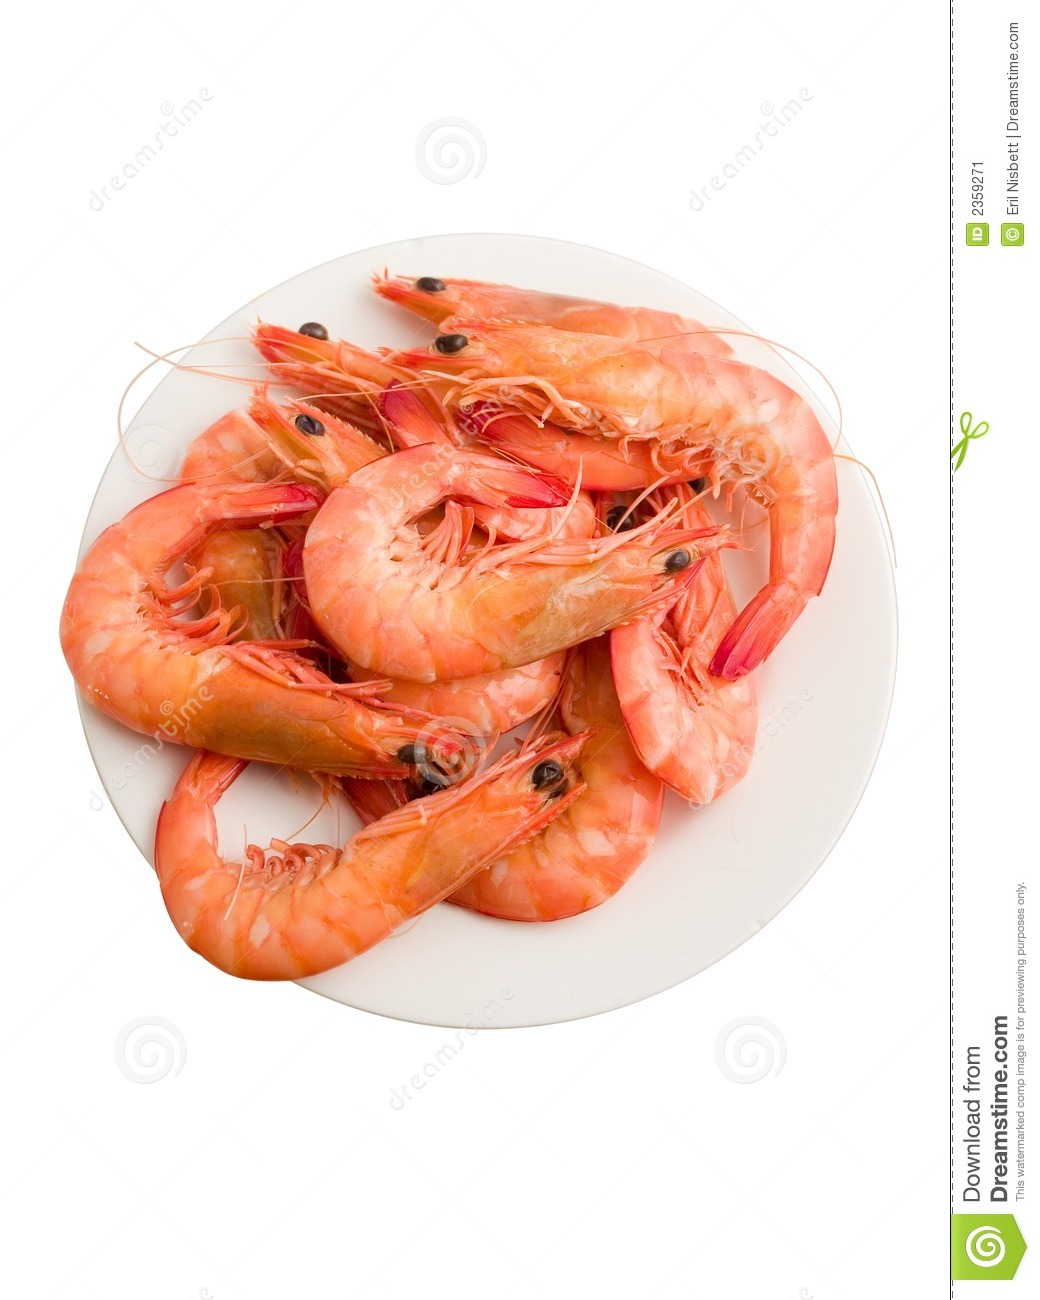 Clipart Cooked Shrimp Cooked prawns stock image